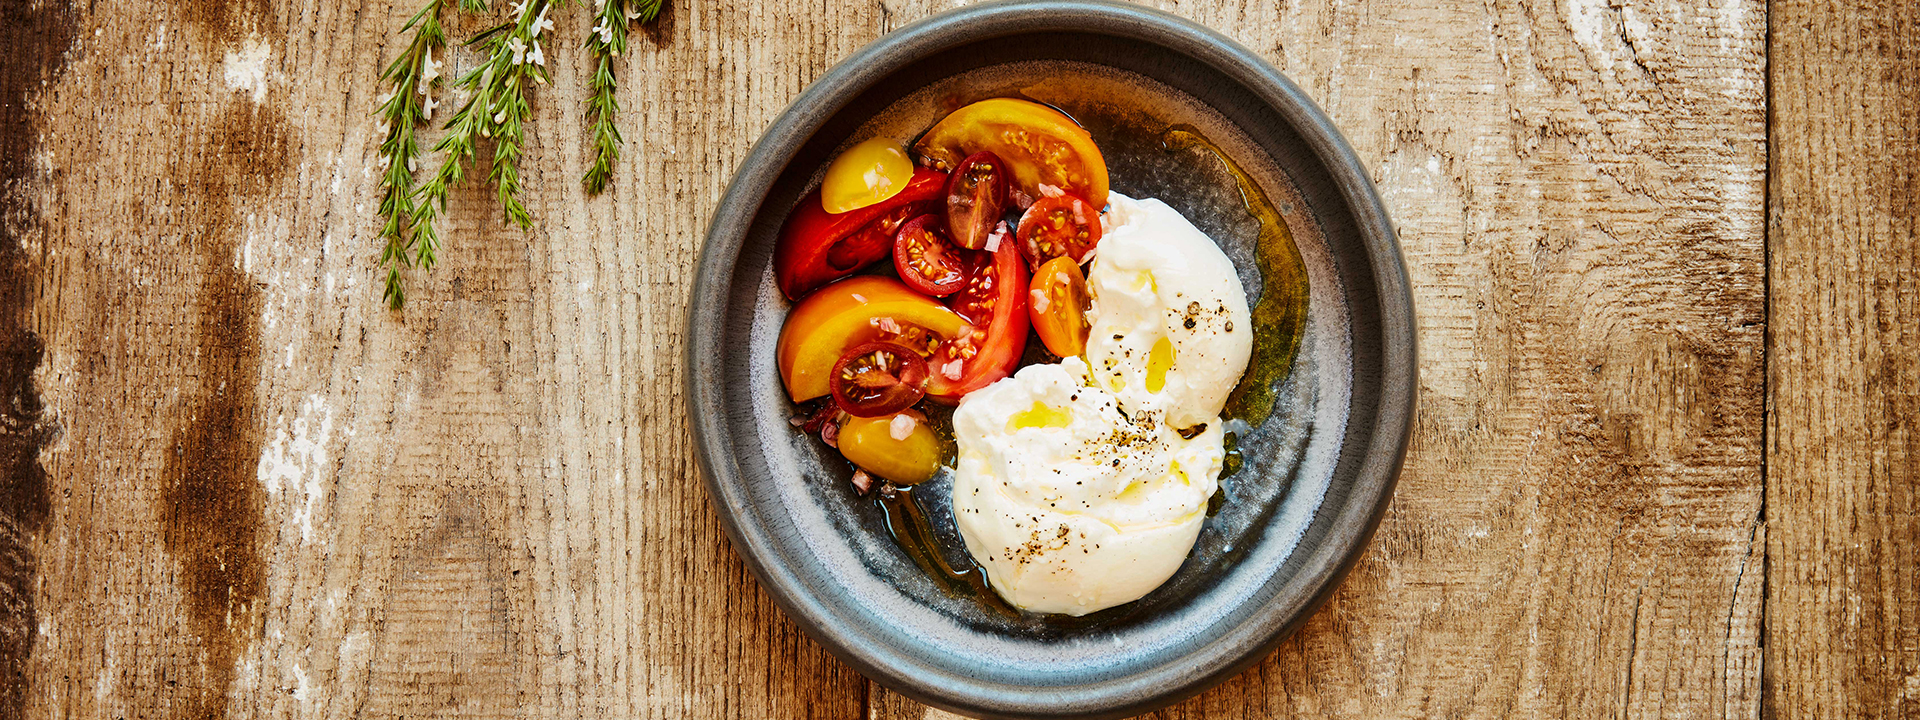 Roasted tomatoes with burrata and garnished with olive oil